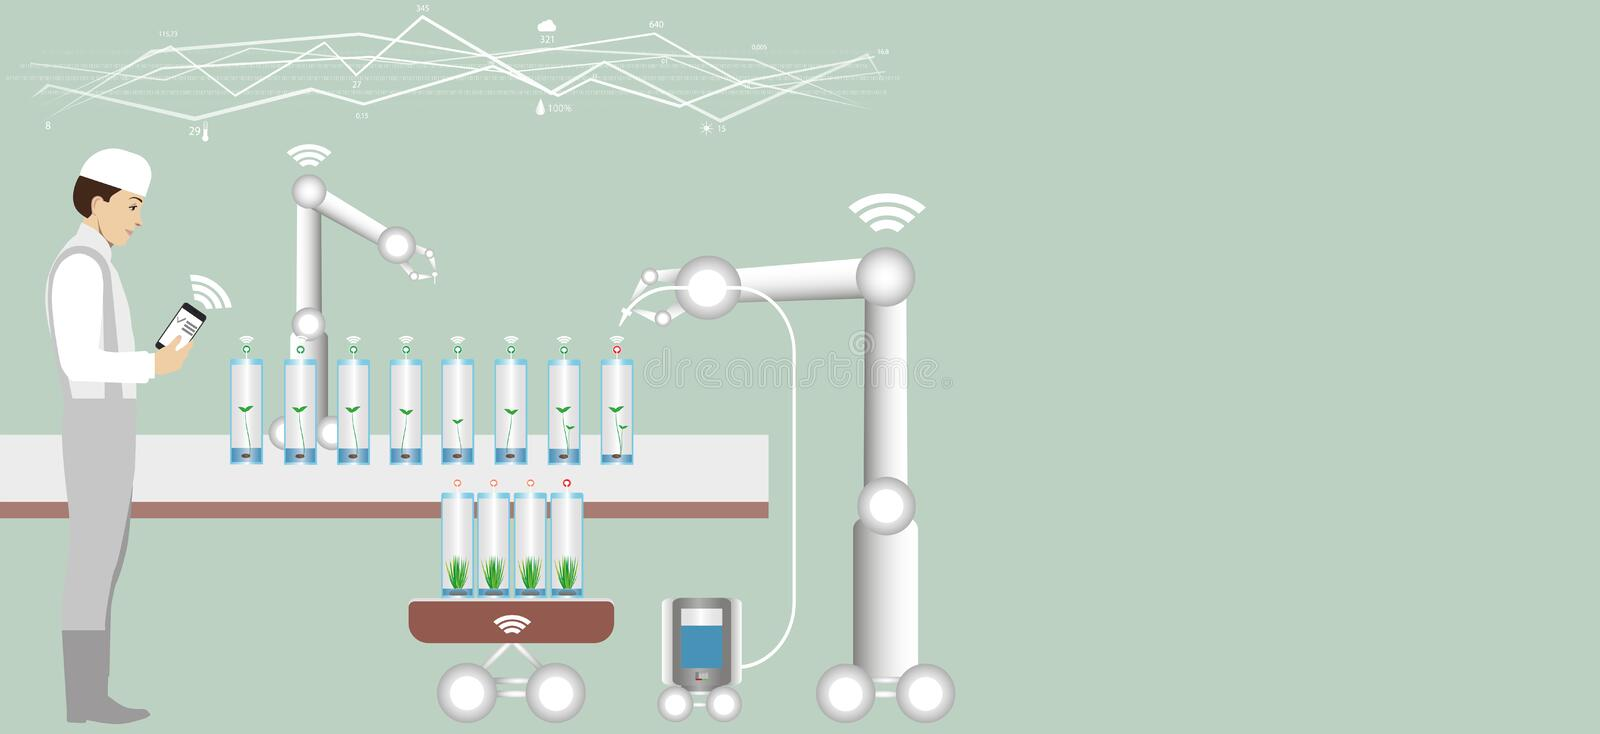 Internet of things in agriculture. vector illustration